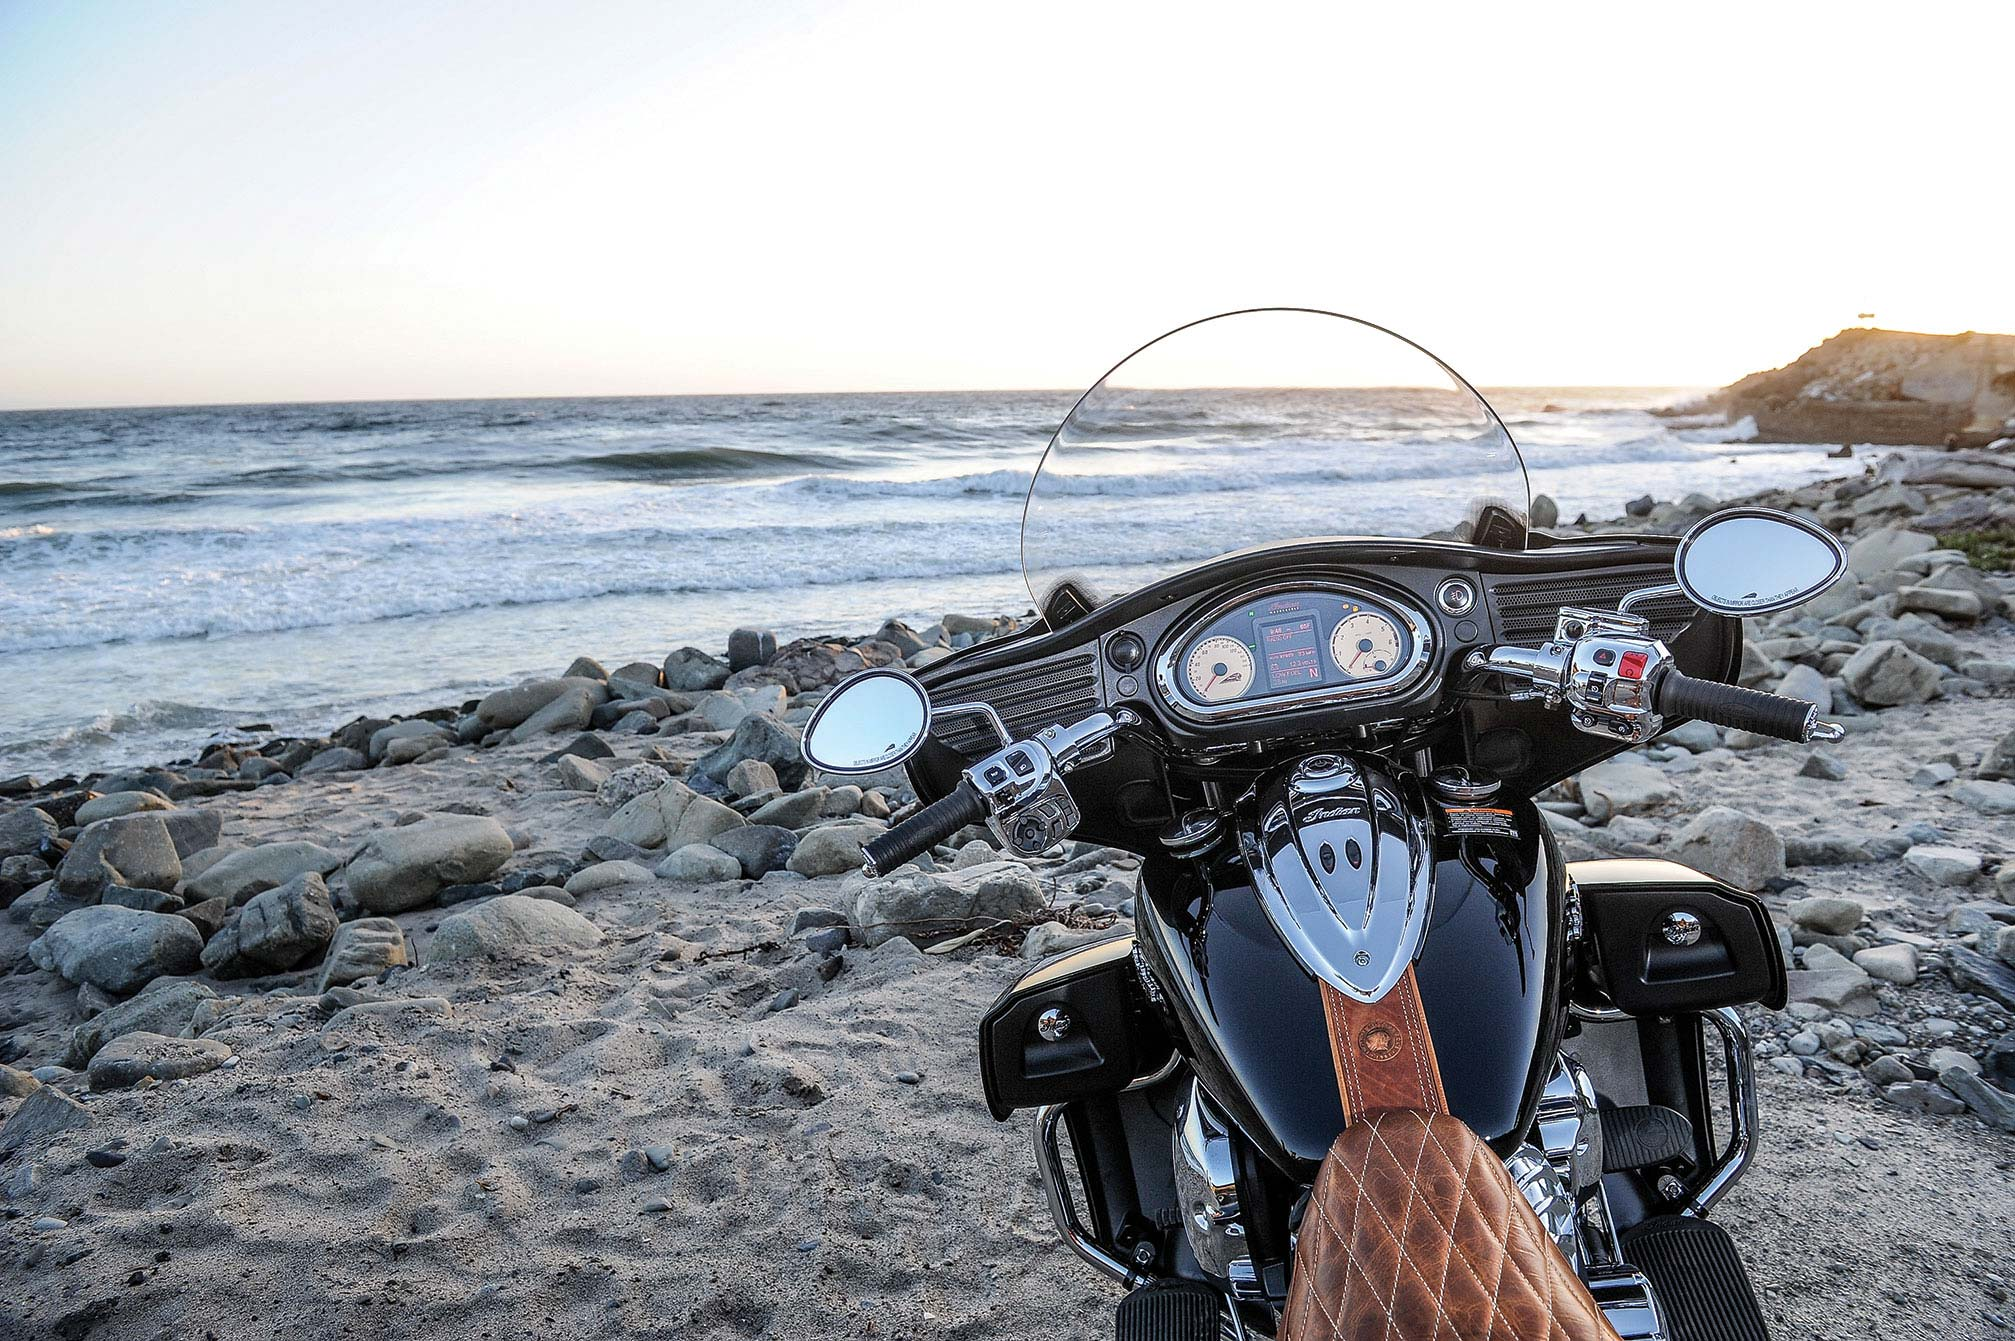 pc wallpaper Indian Roadmaster 2015 Ocean View